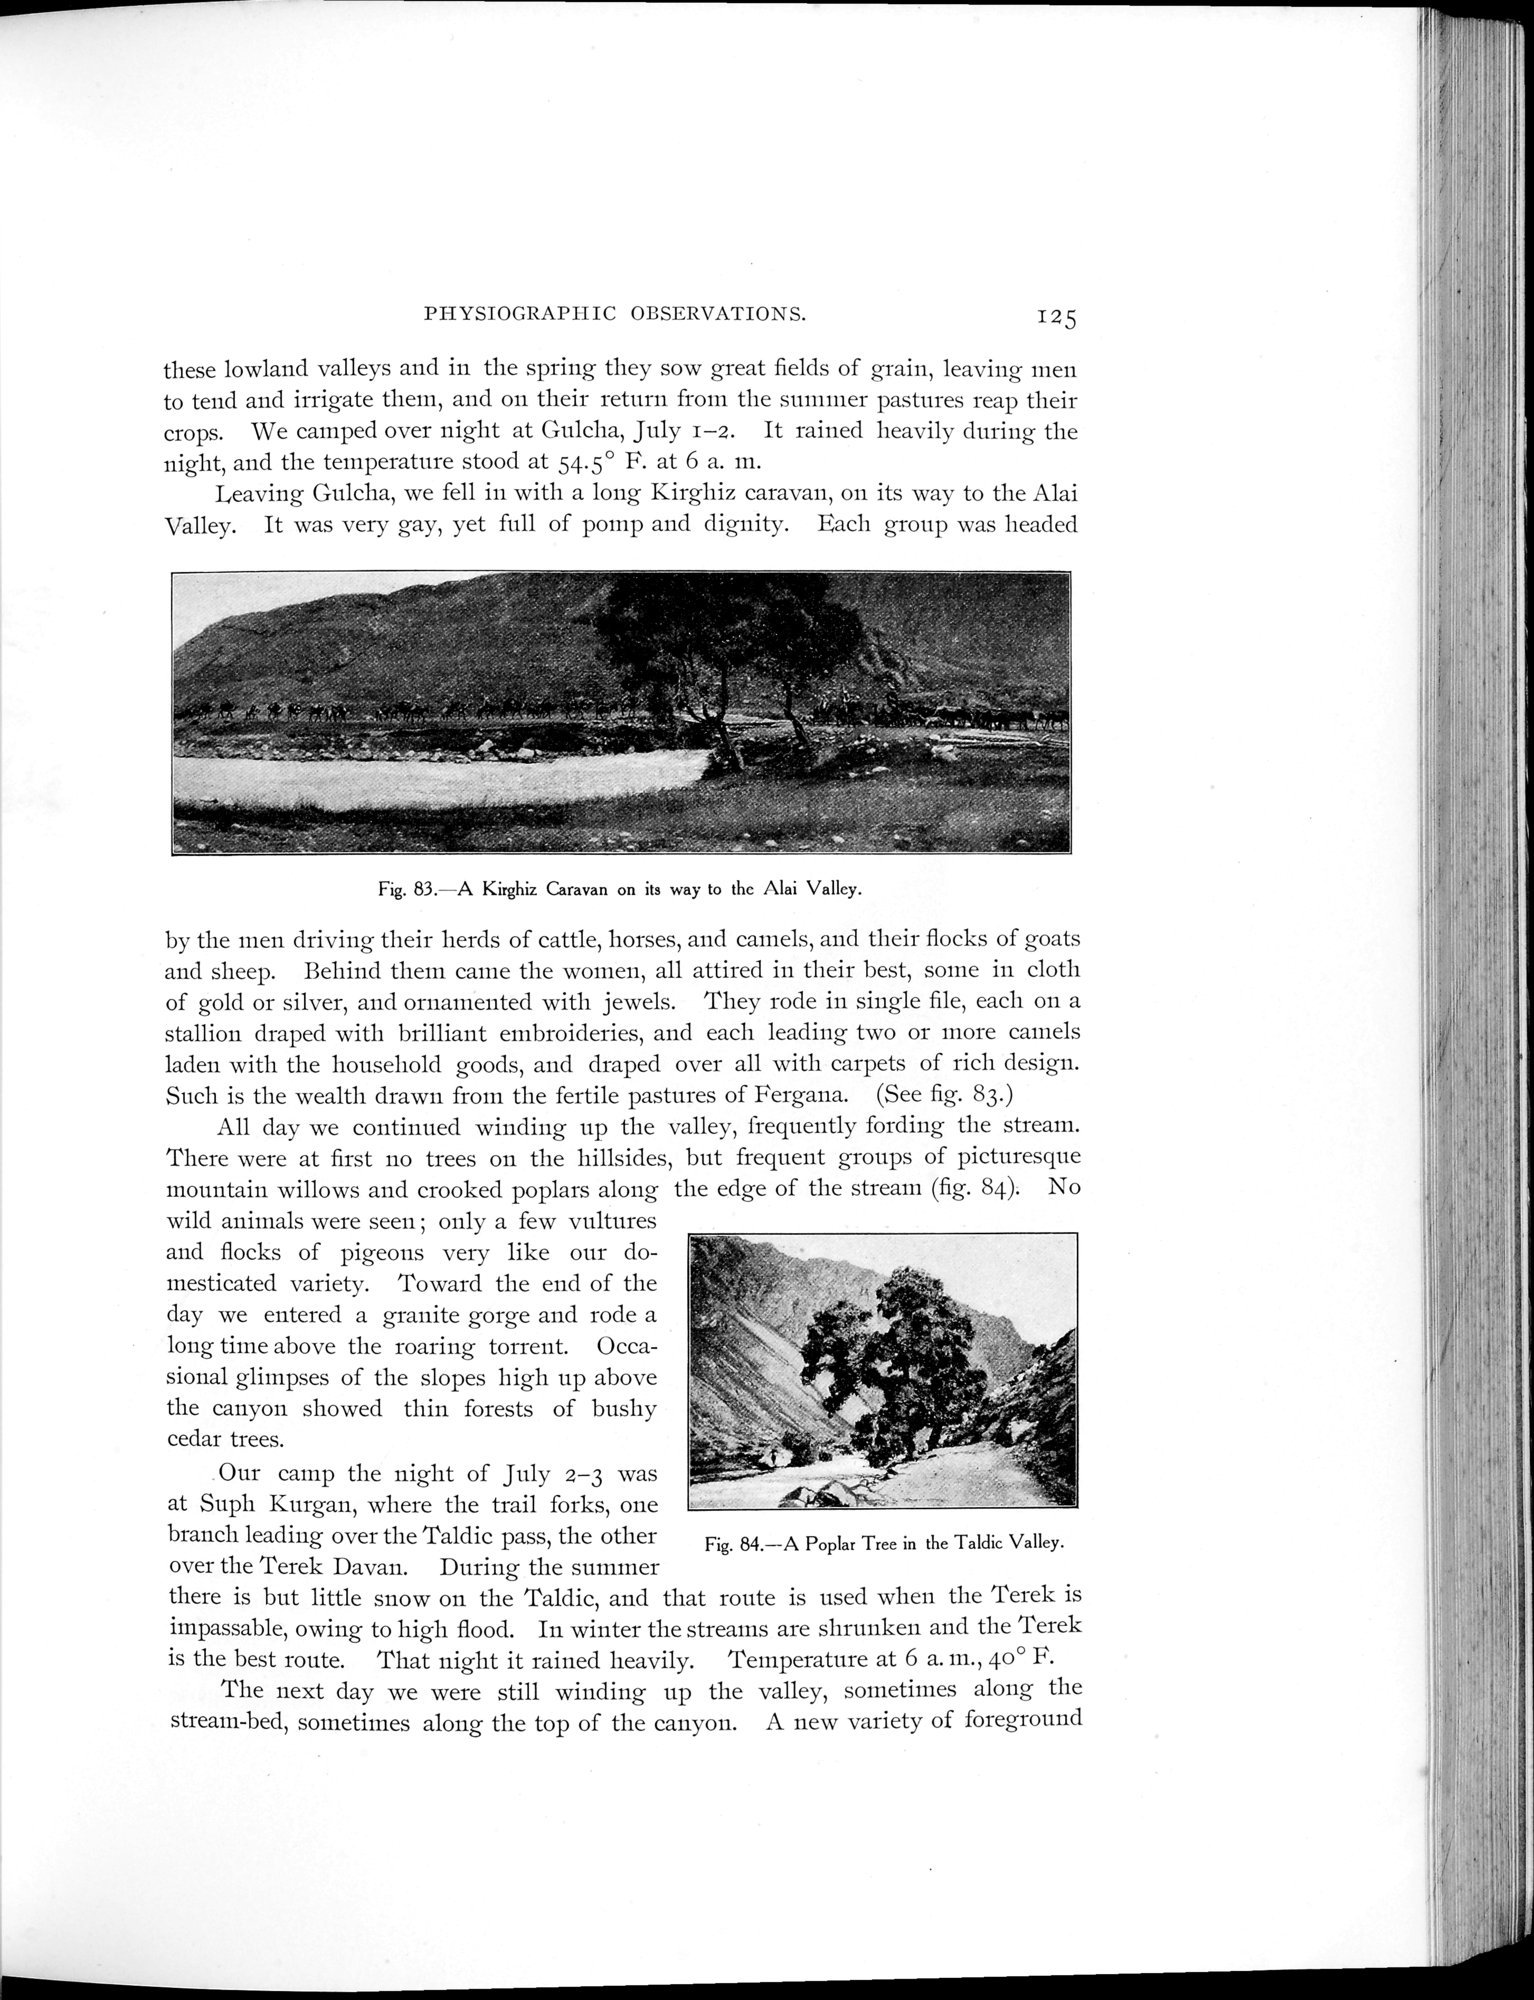 Explorations in Turkestan 1903 : vol.1 / Page 149 (Grayscale High Resolution Image)